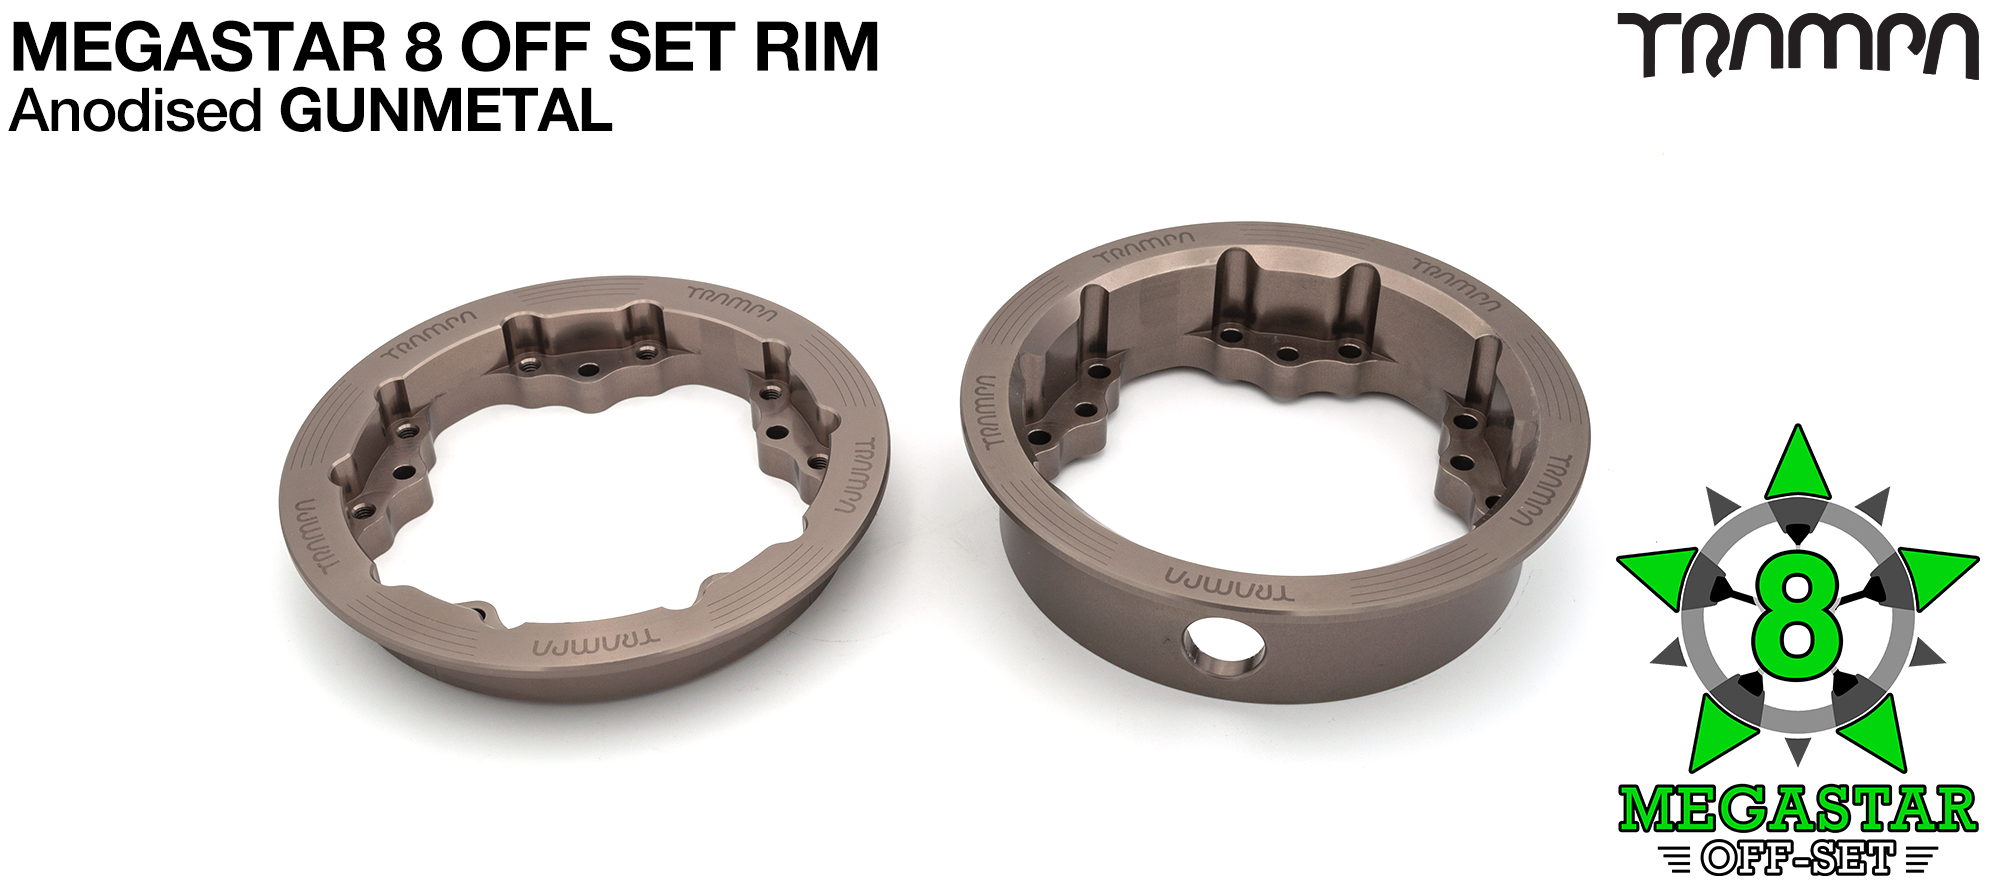 8 Inch MEGASTAR Rim OFF SET - Anodised GUNMETAL - Pro OFF-SET Superstars will widen your wheel base by 15mm